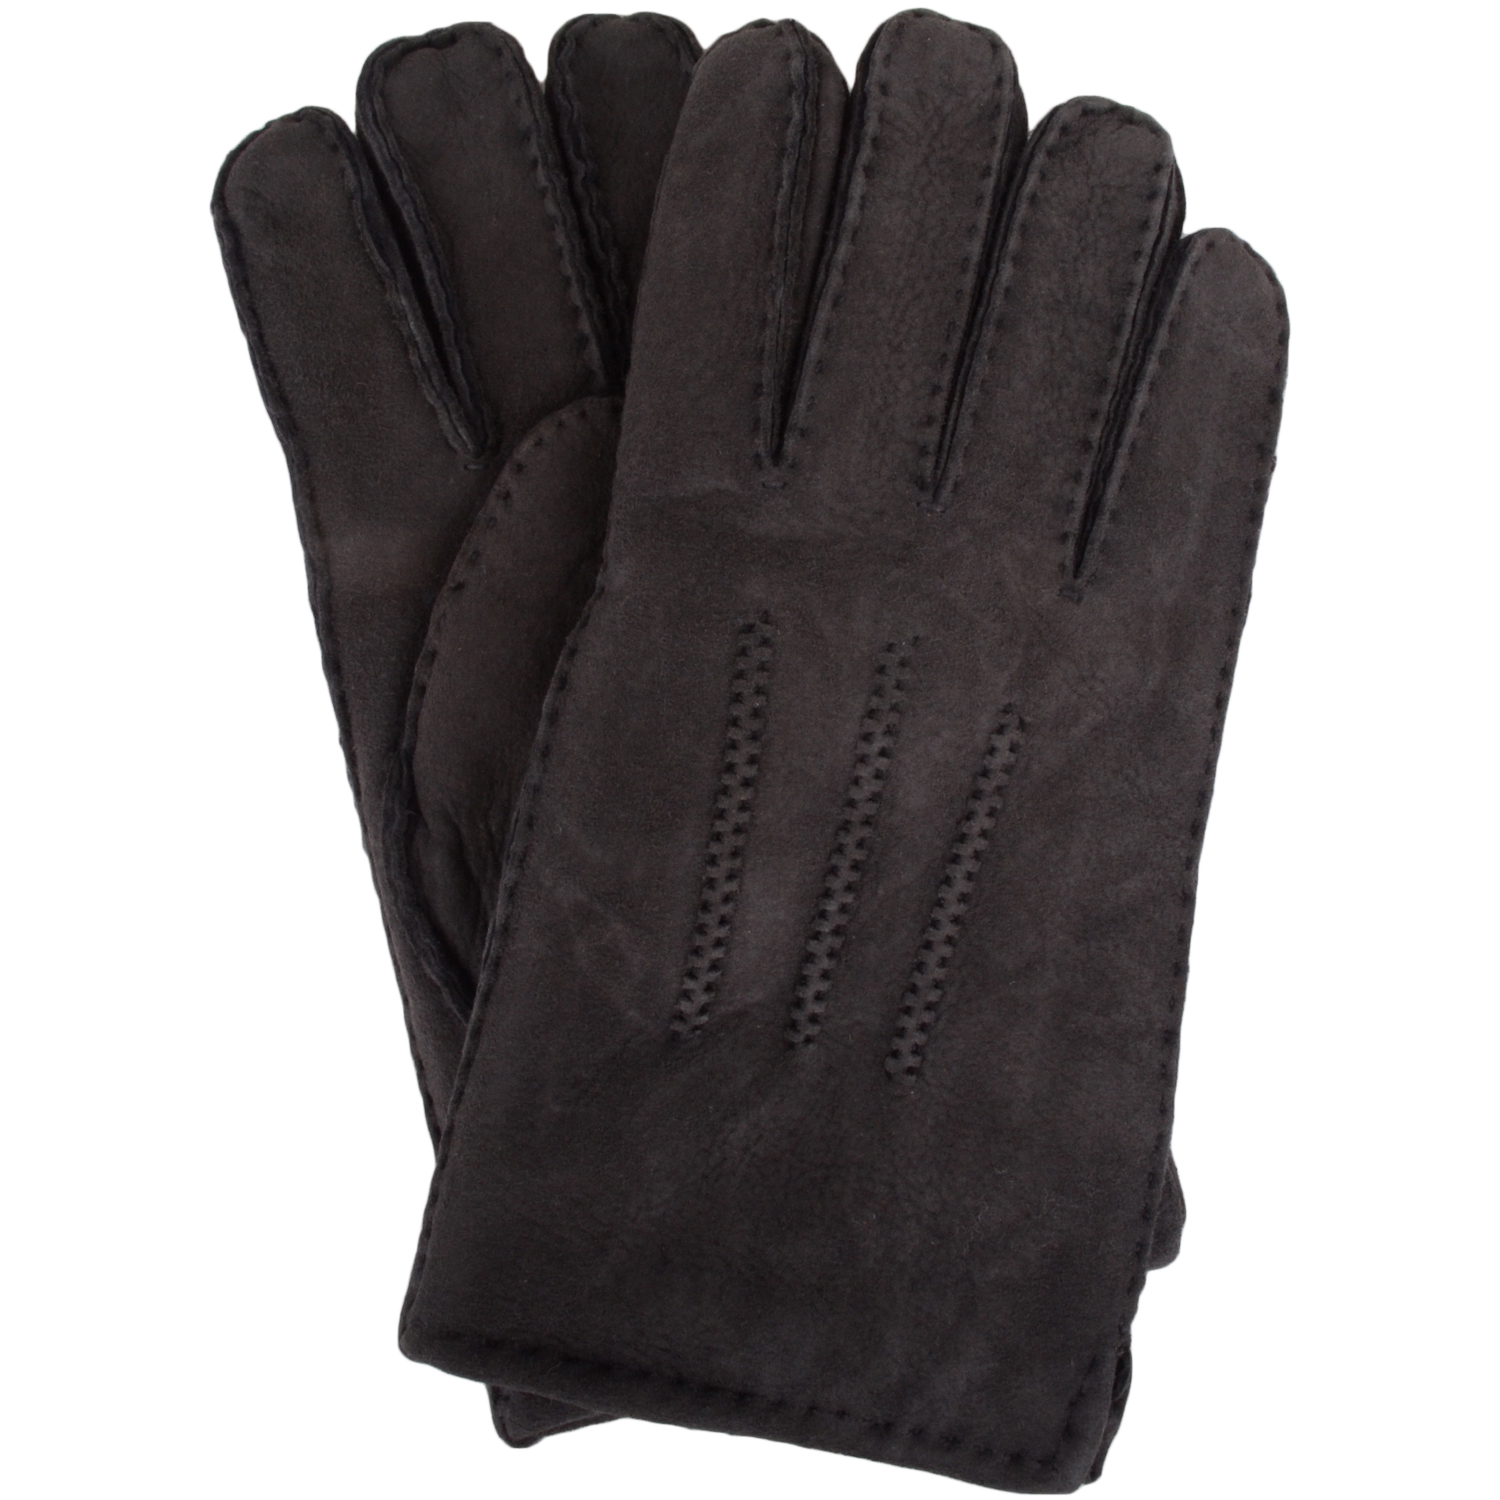 Full Sheepskin Gloves - Grey